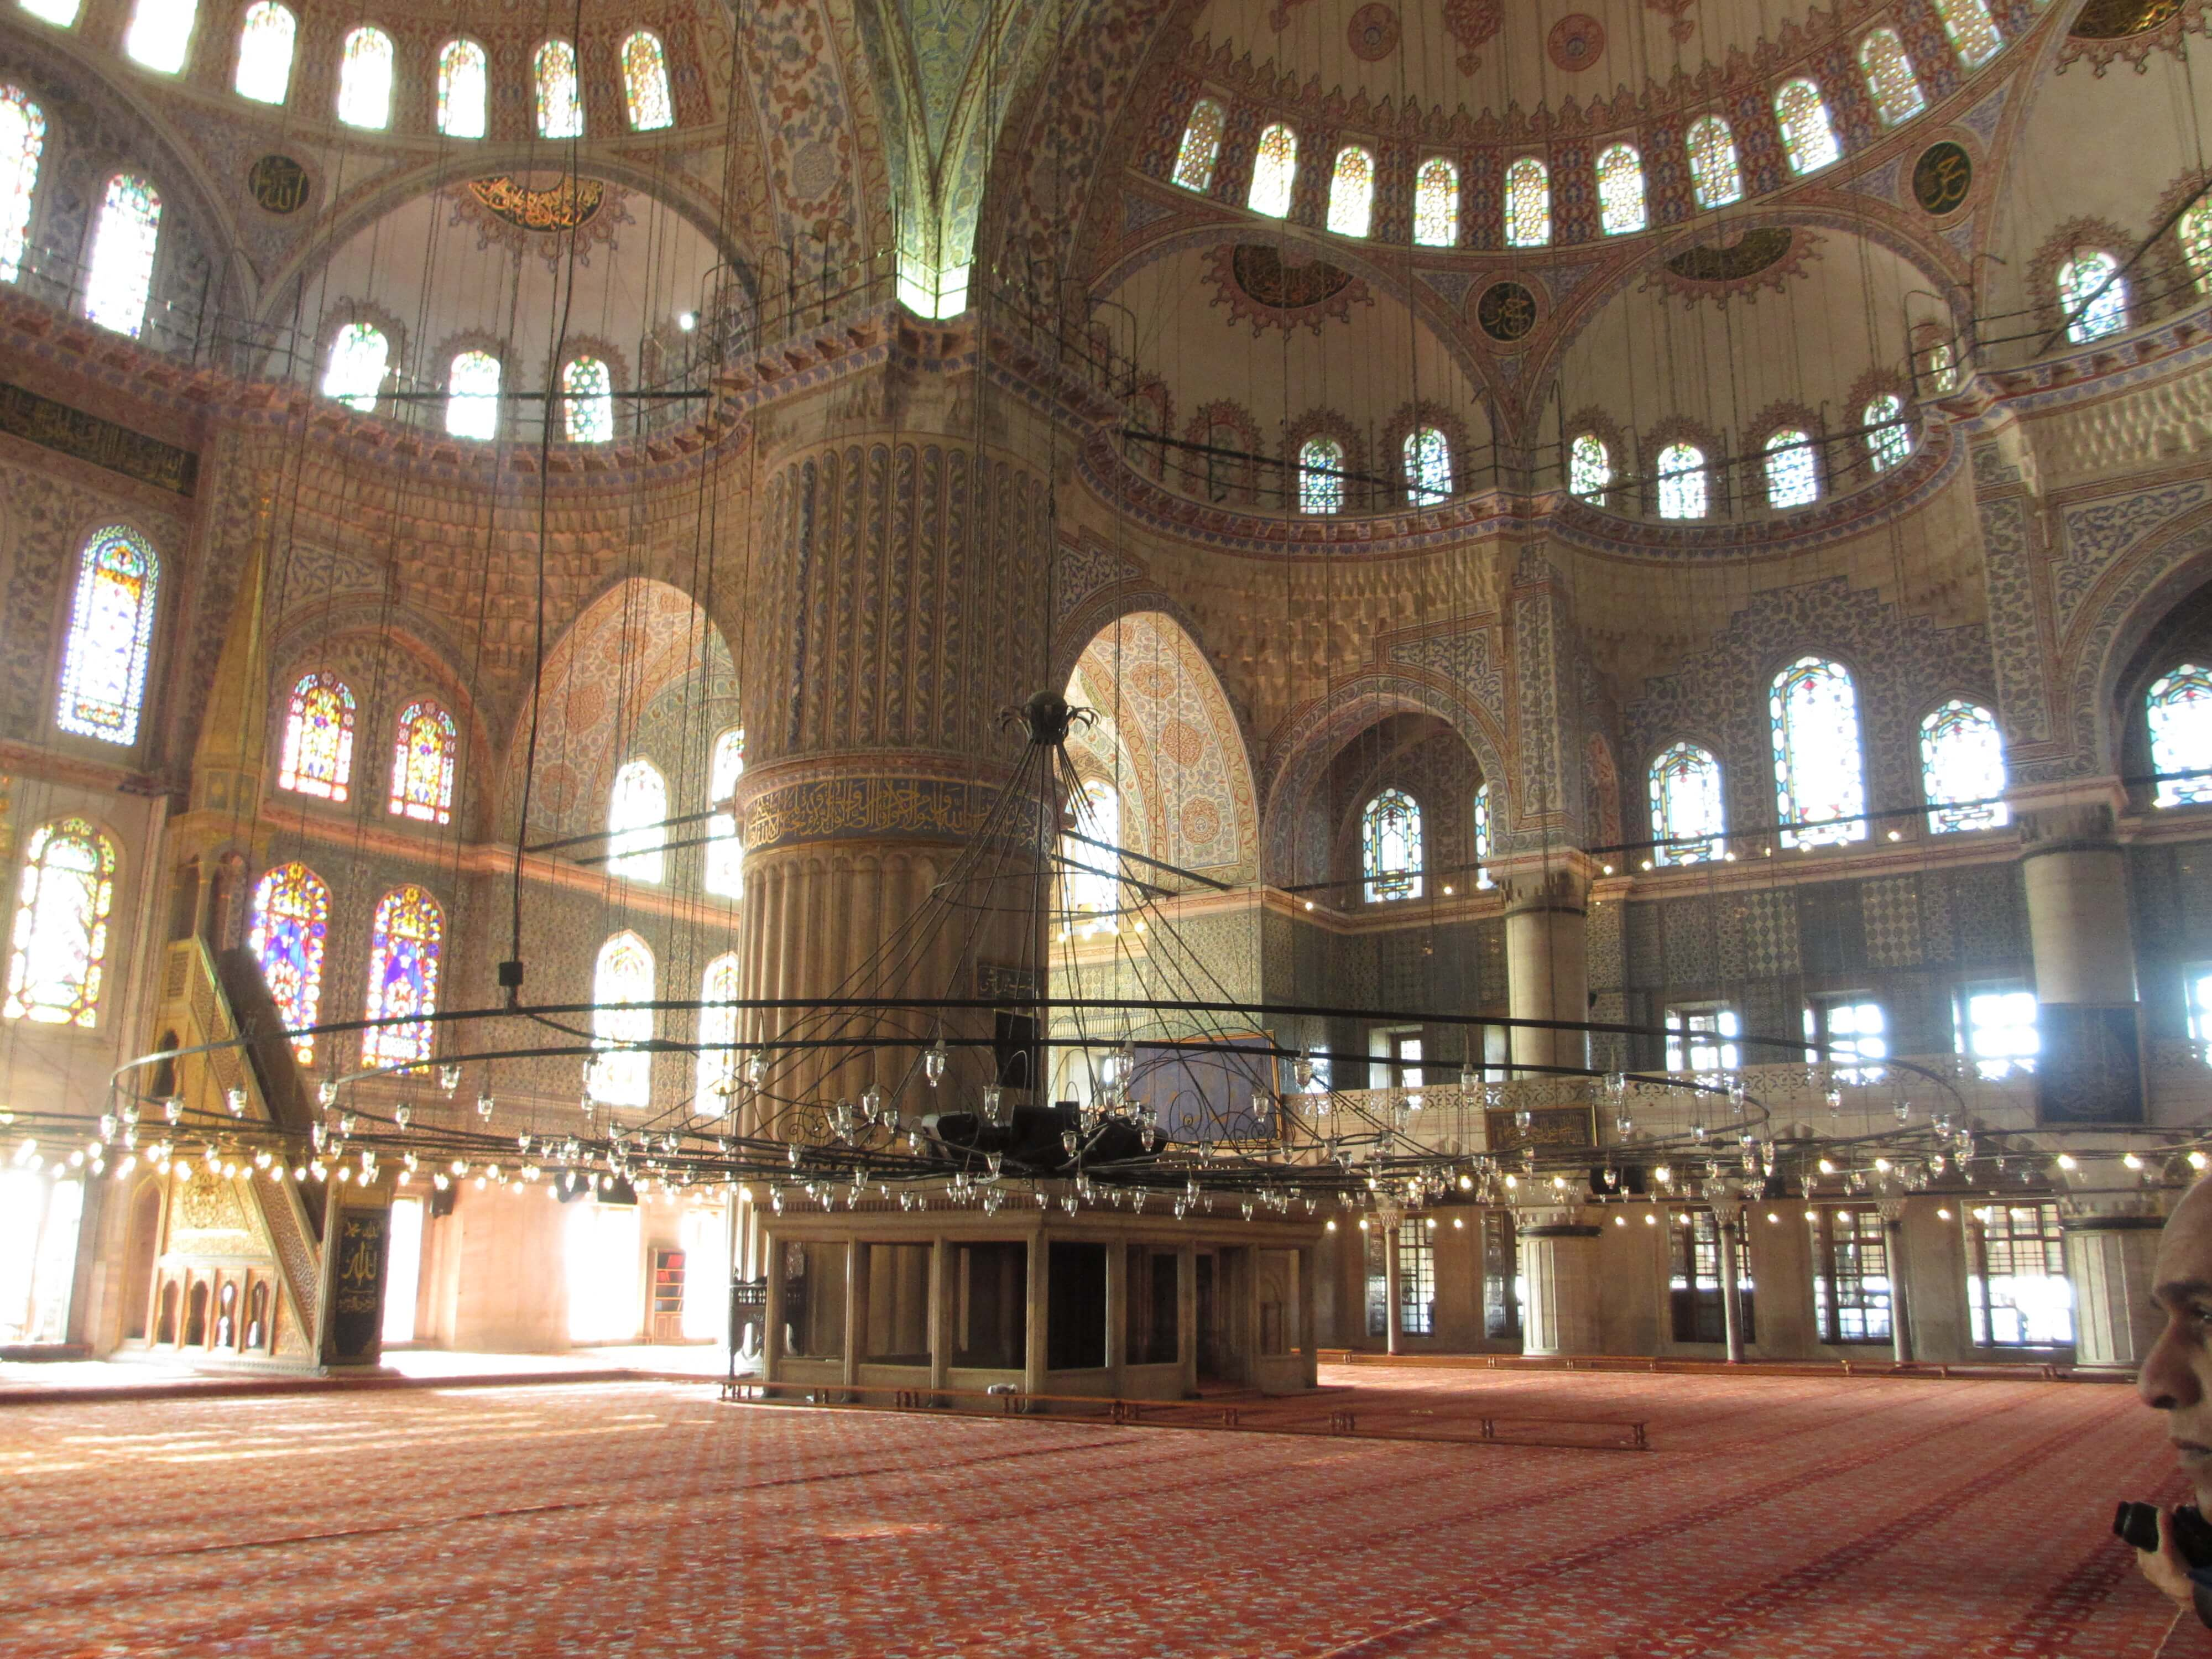 interior of mosque, with lights, domes and windows